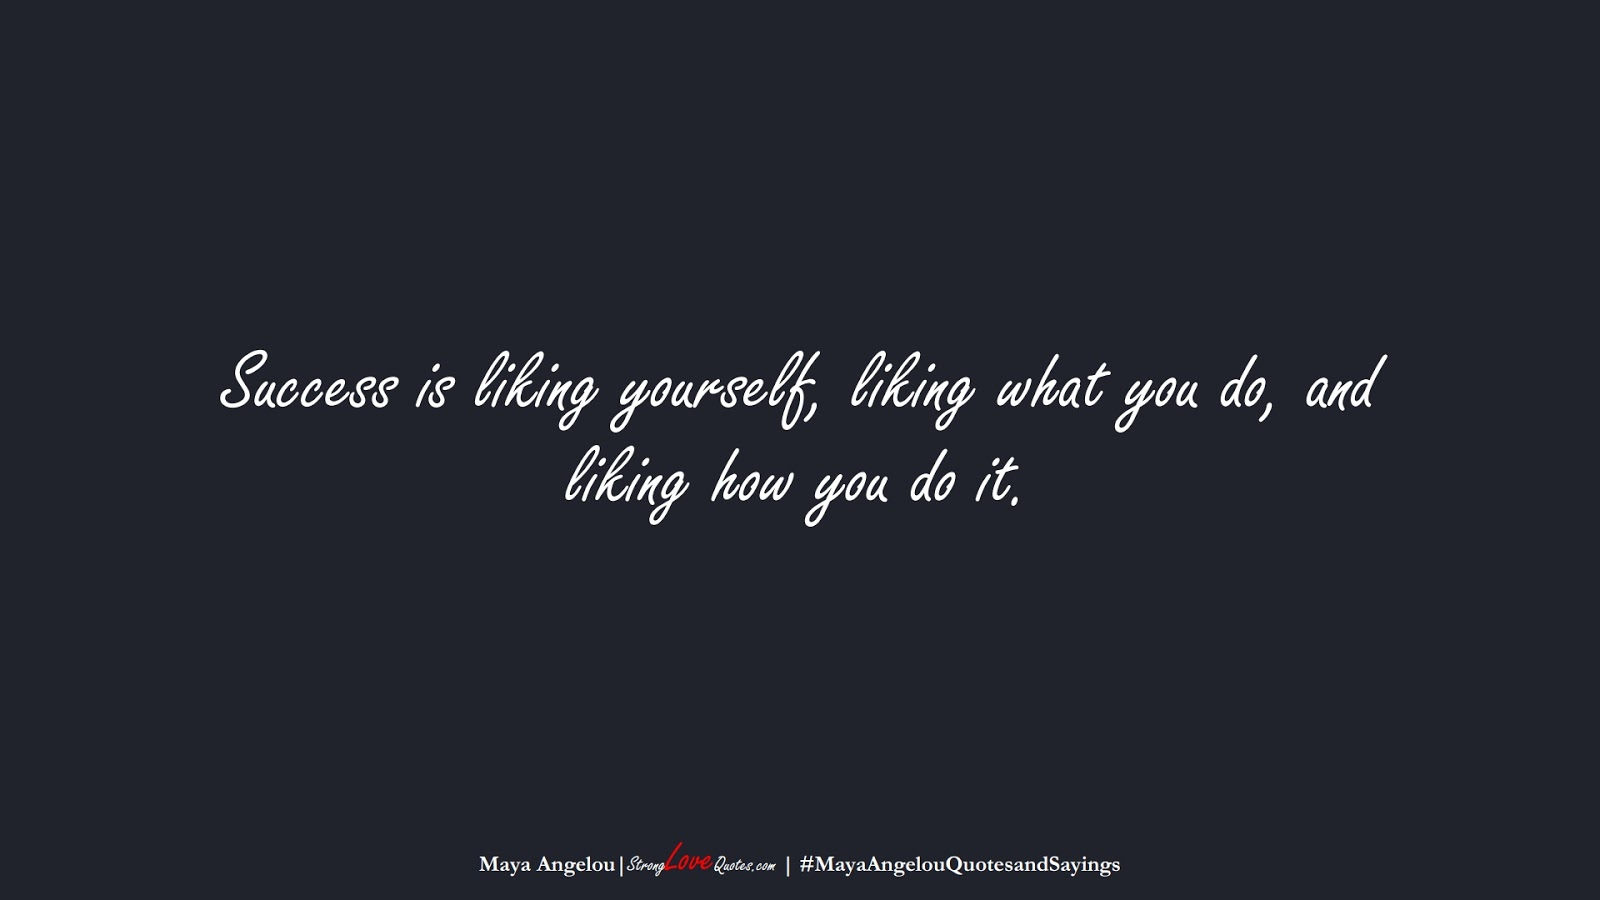 Success is liking yourself, liking what you do, and liking how you do it. (Maya Angelou);  #MayaAngelouQuotesandSayings